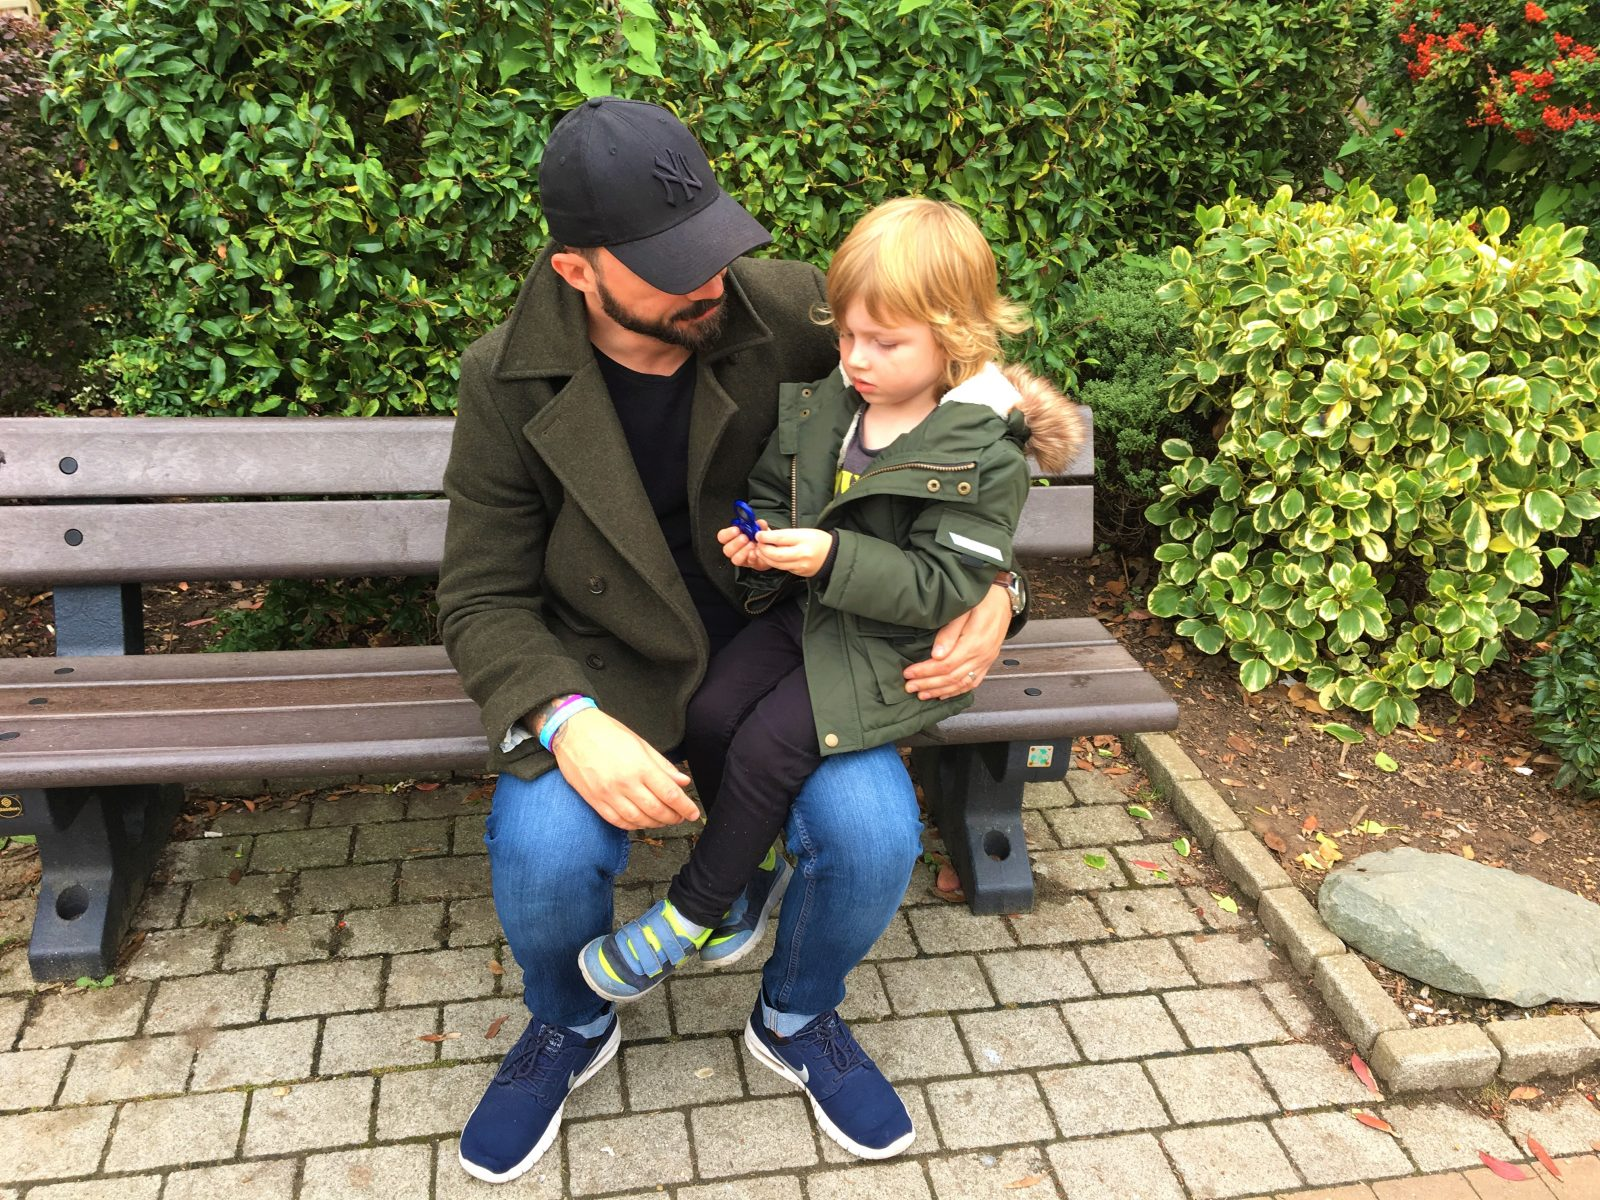 my husband and son sitting on a bench